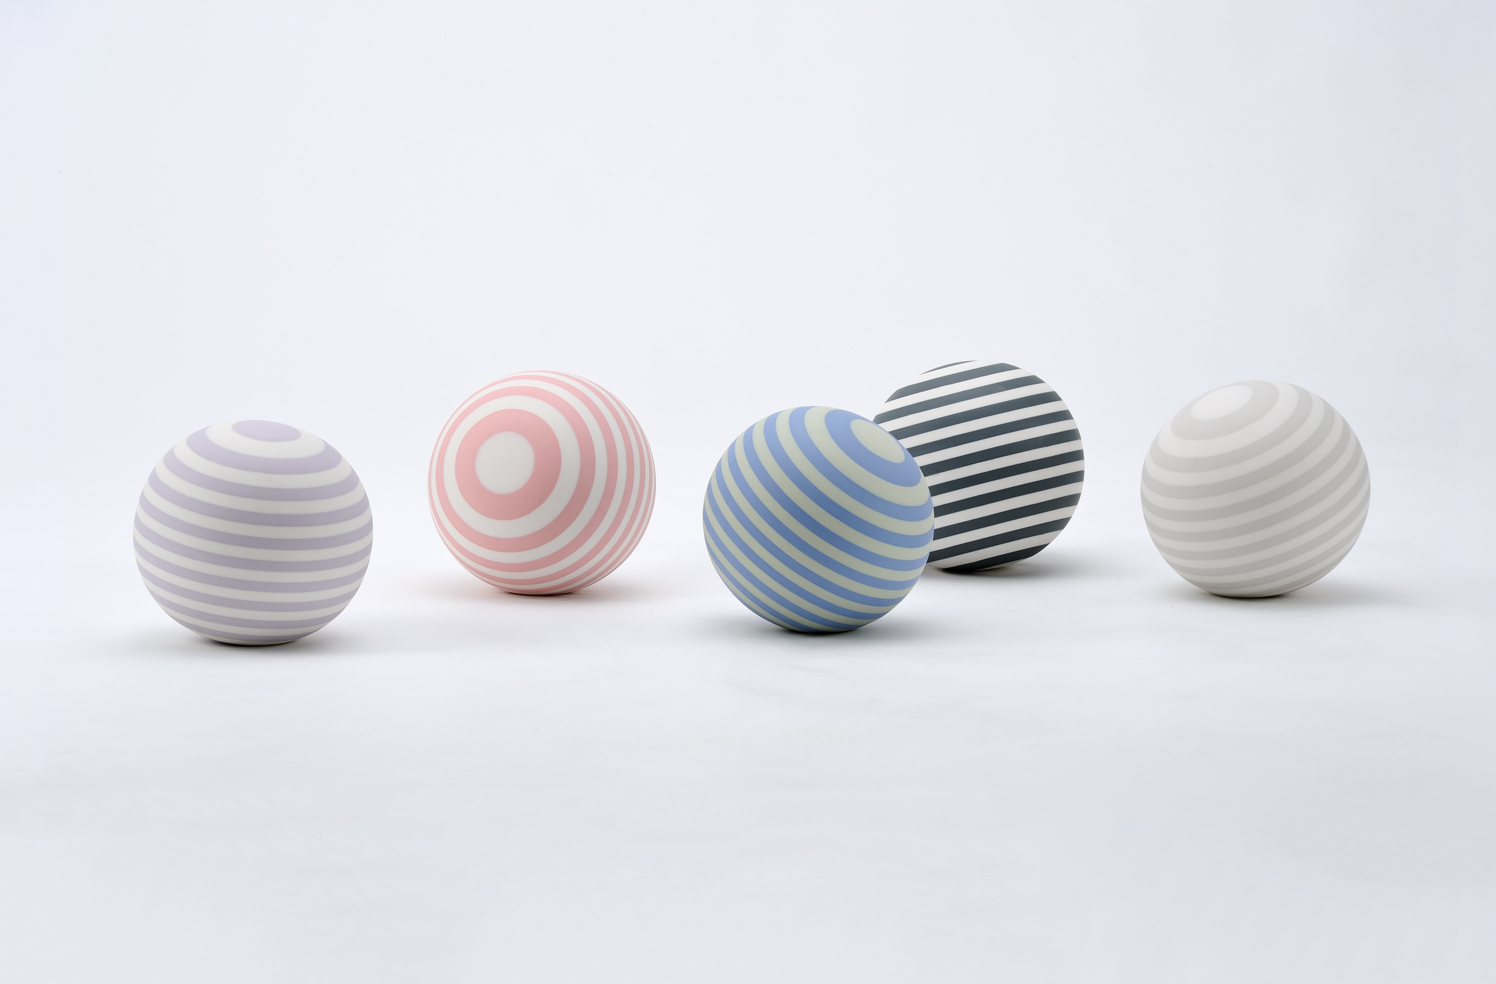 a1_mdba_mdby_manufactured_ceramics_colors_tomoko_sakumoto